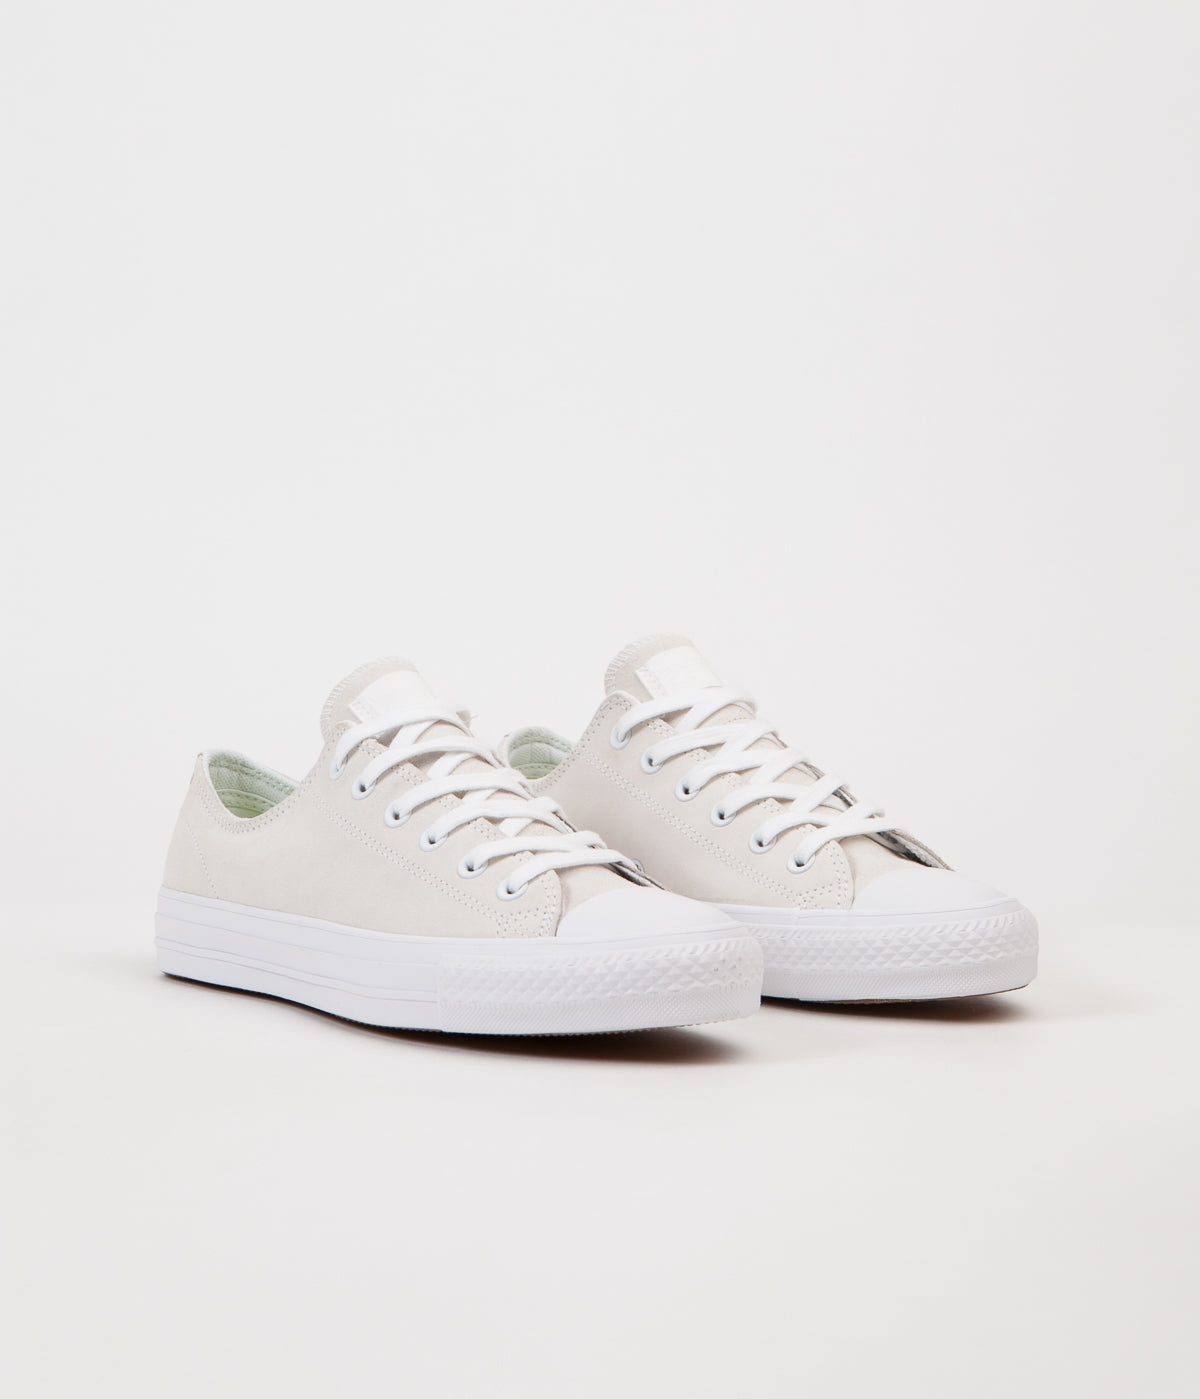 Chaussure Converse CTAS Pro OX White Teal